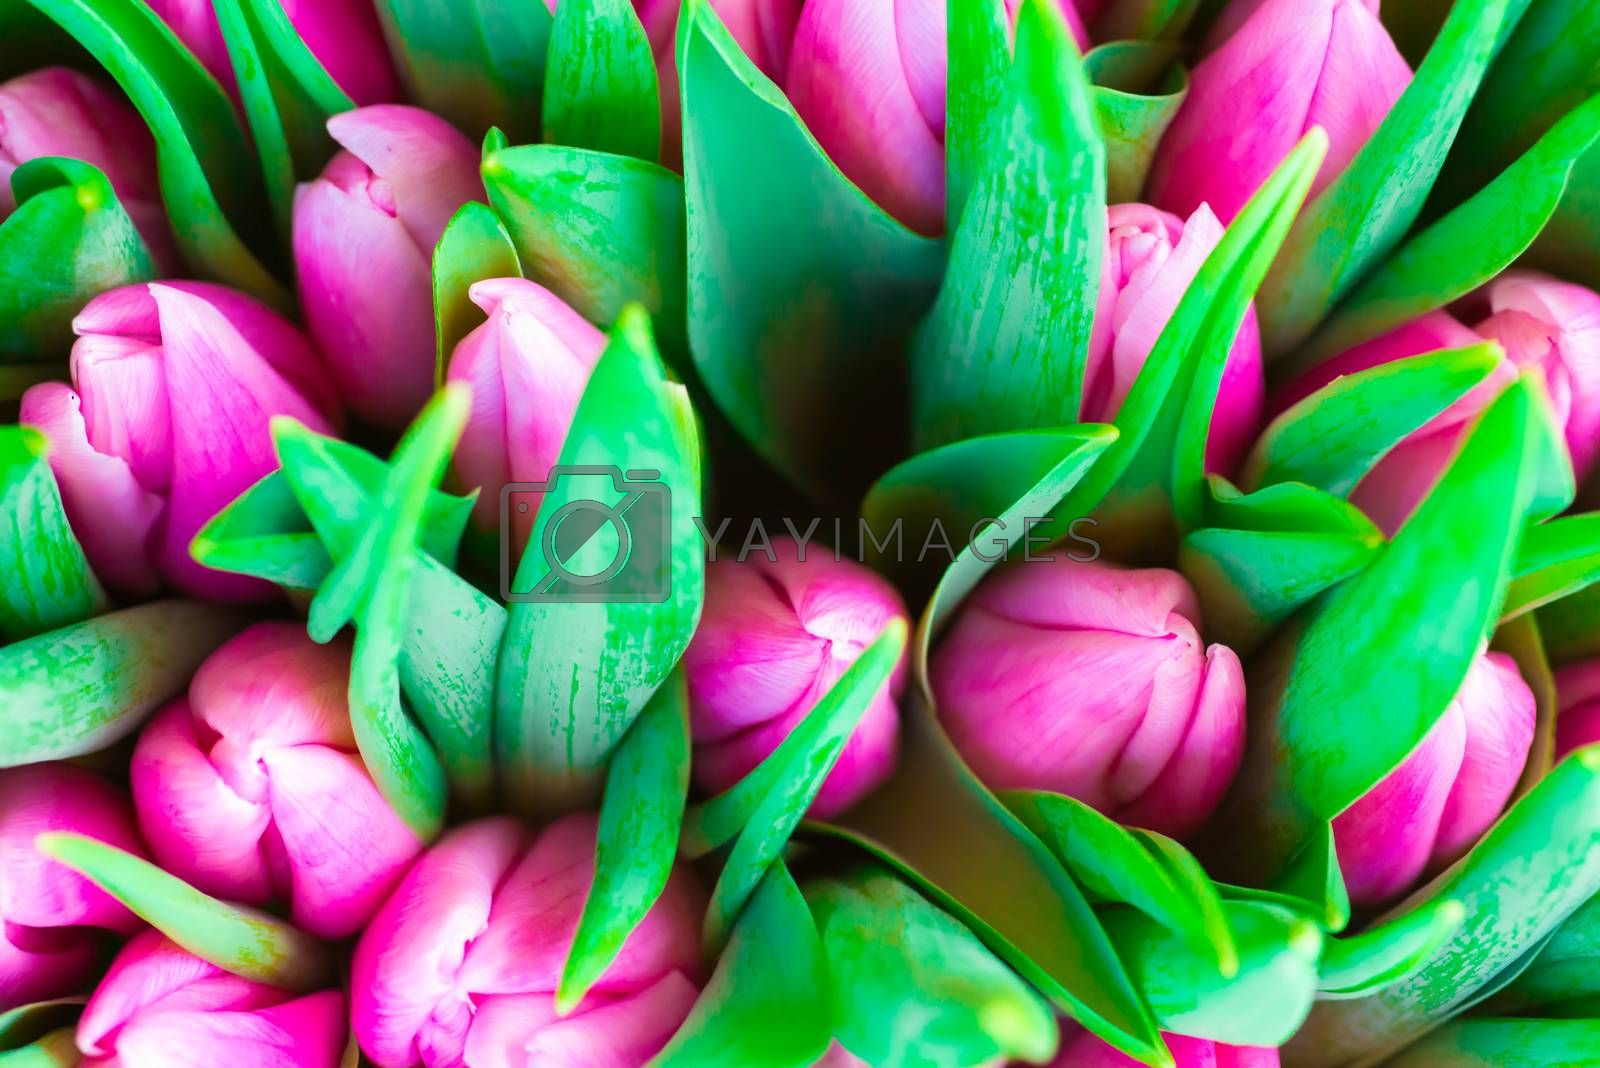 Fresh pink tulips with green leaves- nature spring background. Soft focus and bokeh